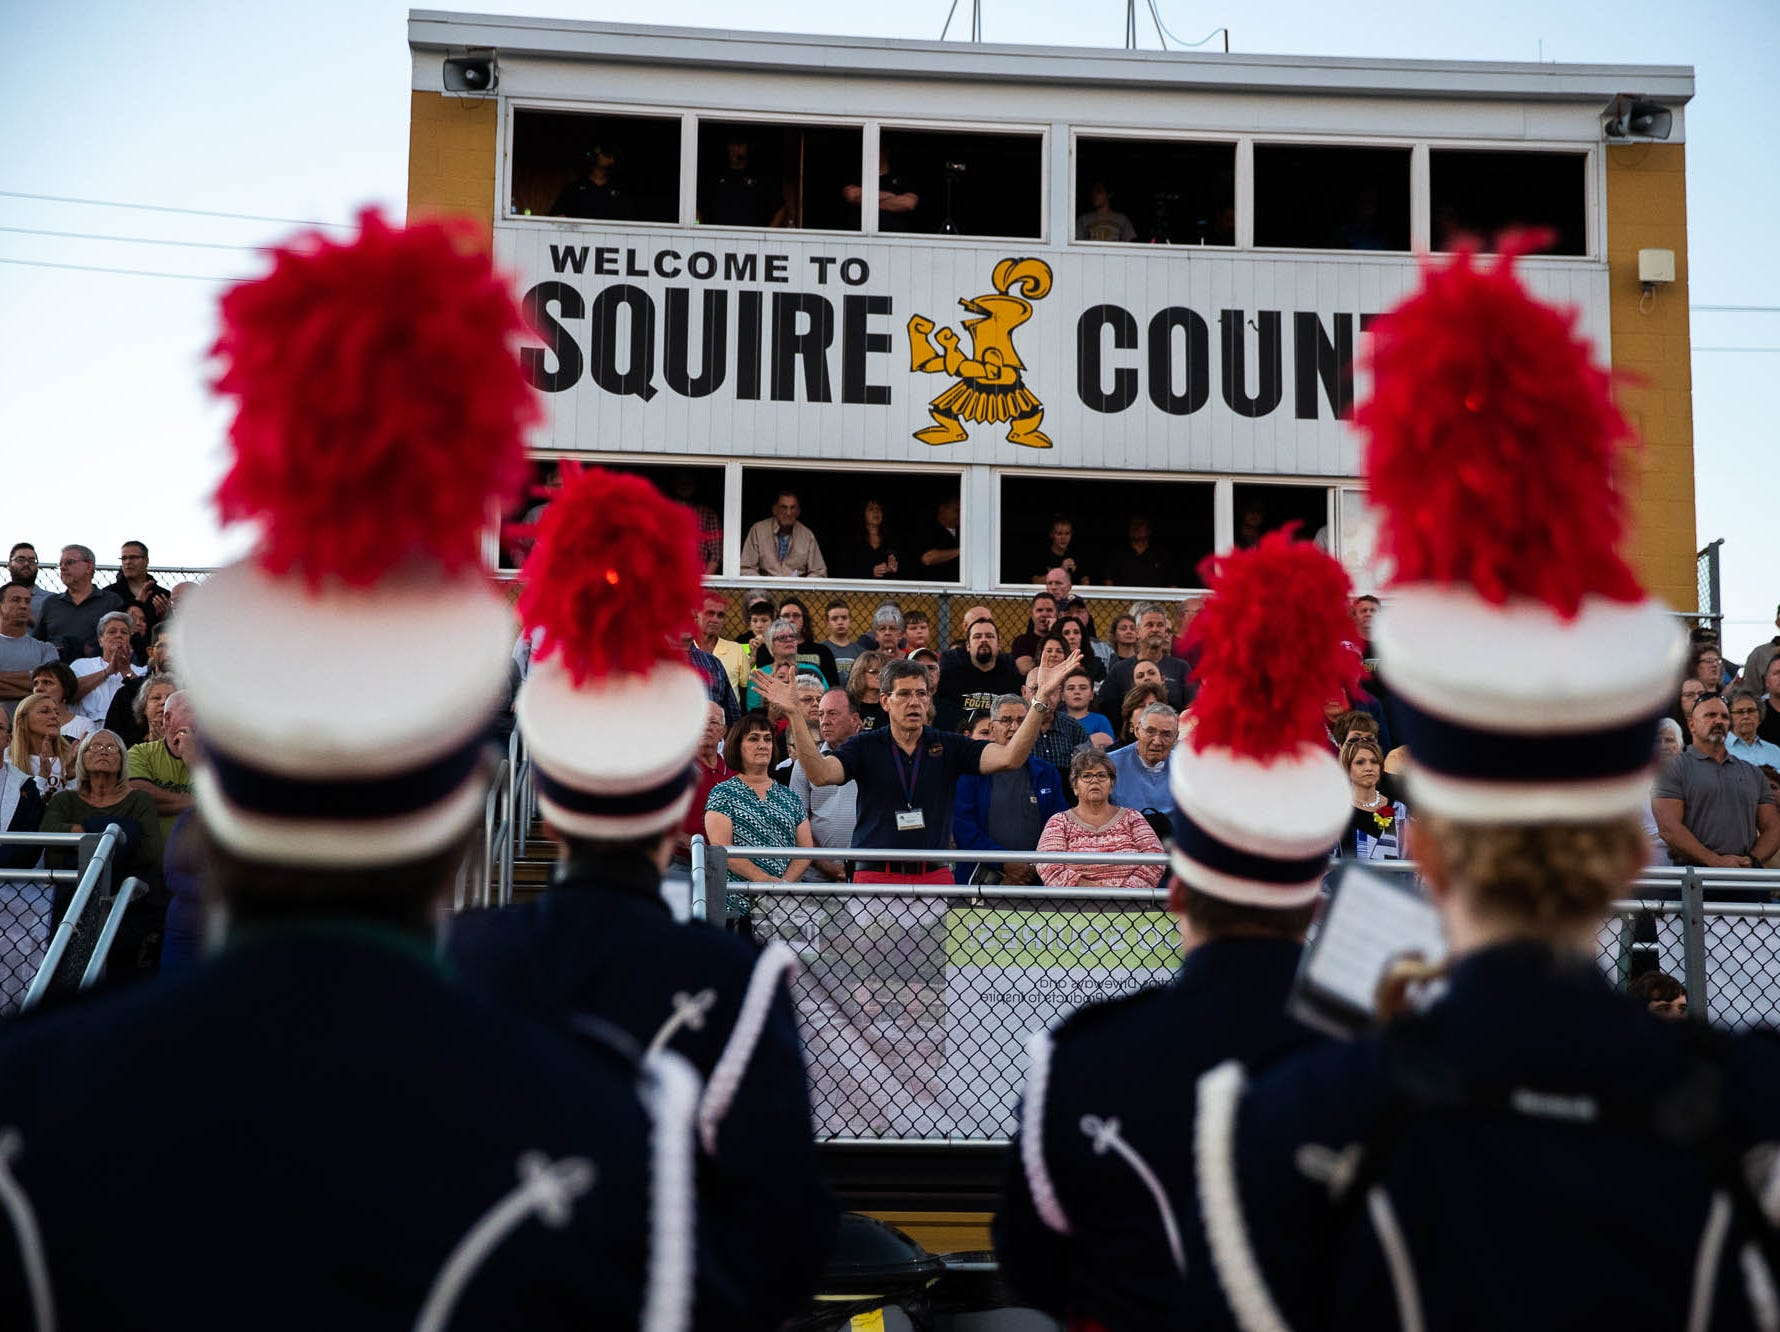 The Delone Catholic band performs before a football game between Delone Catholic and Biglerville, Friday, Sept. 28, 2018, in McSherrystown. Delone led Biglerville 35-0 at the half.